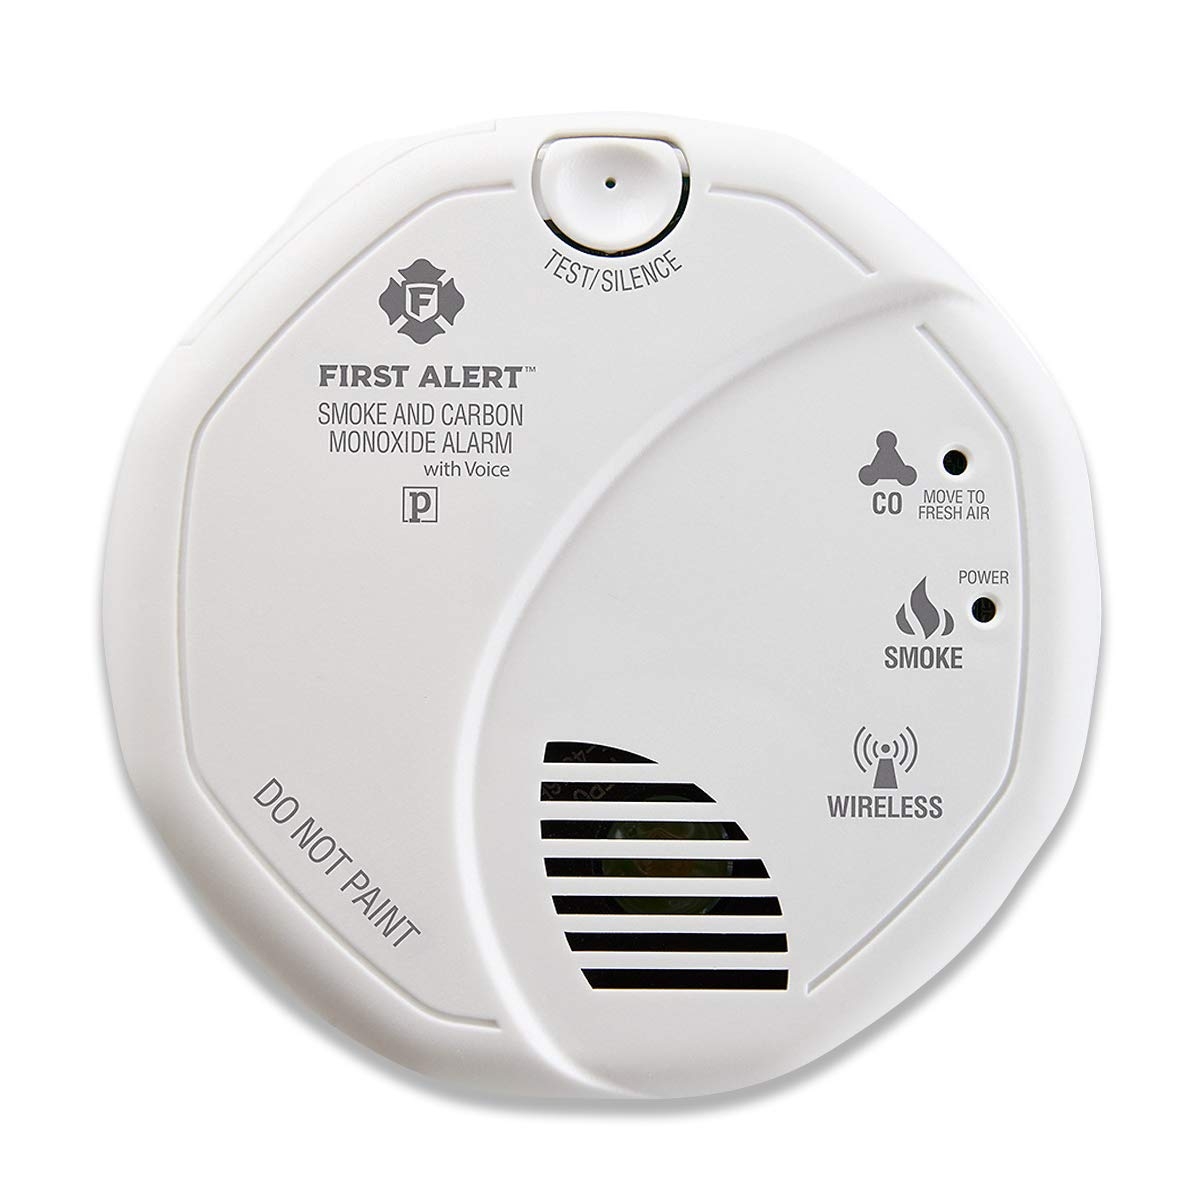 Best For Combination Smoke and Carbon Monoxide Alarm